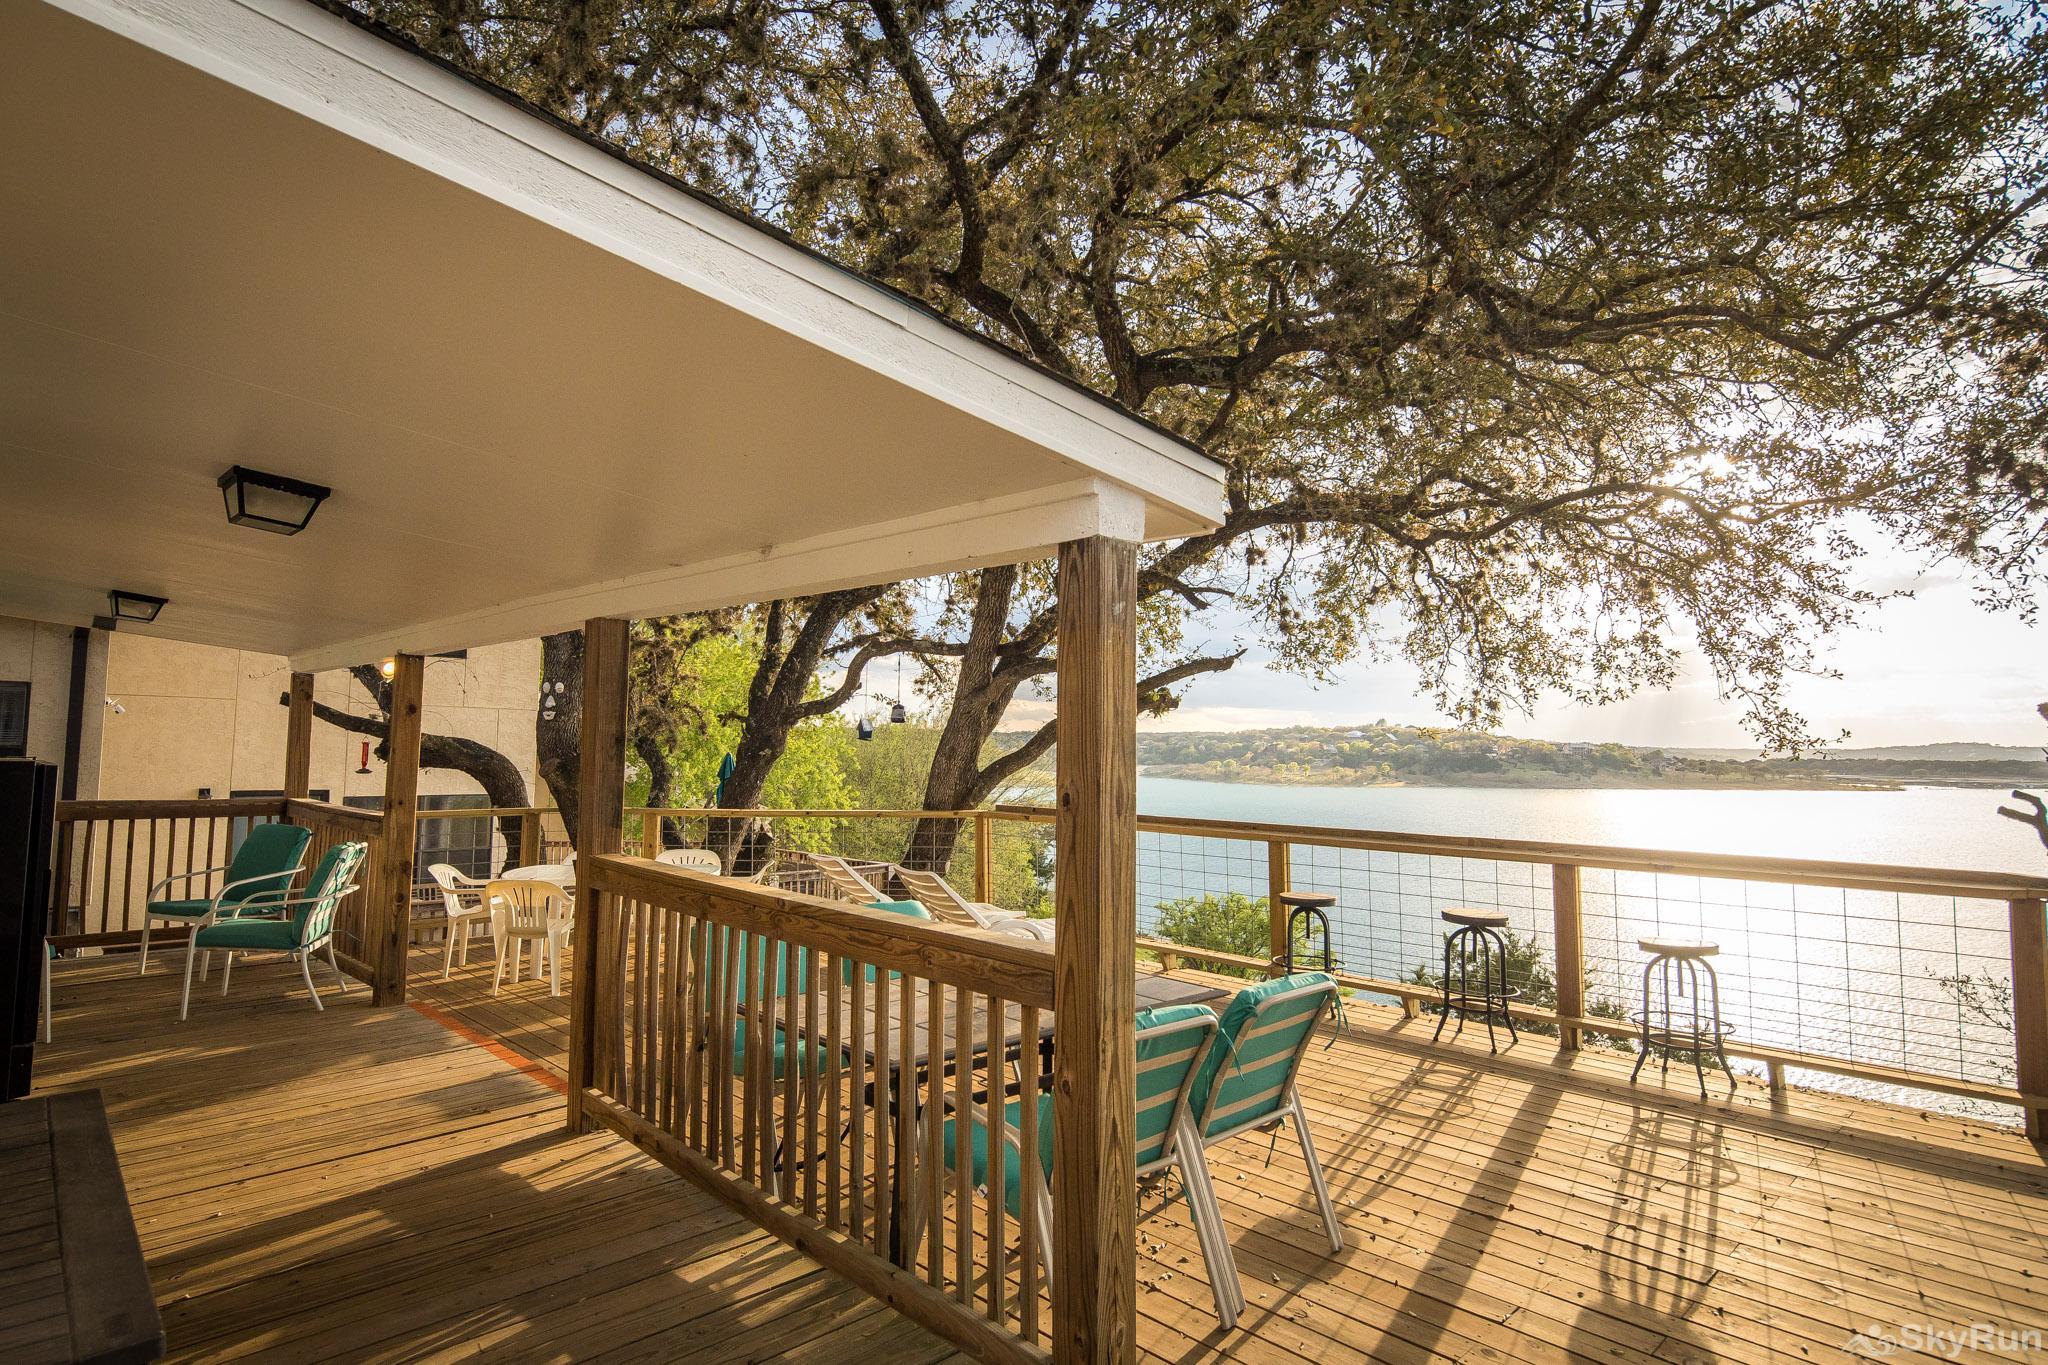 CLIFF HOUSE AT CANYON LAKE Covered patio area